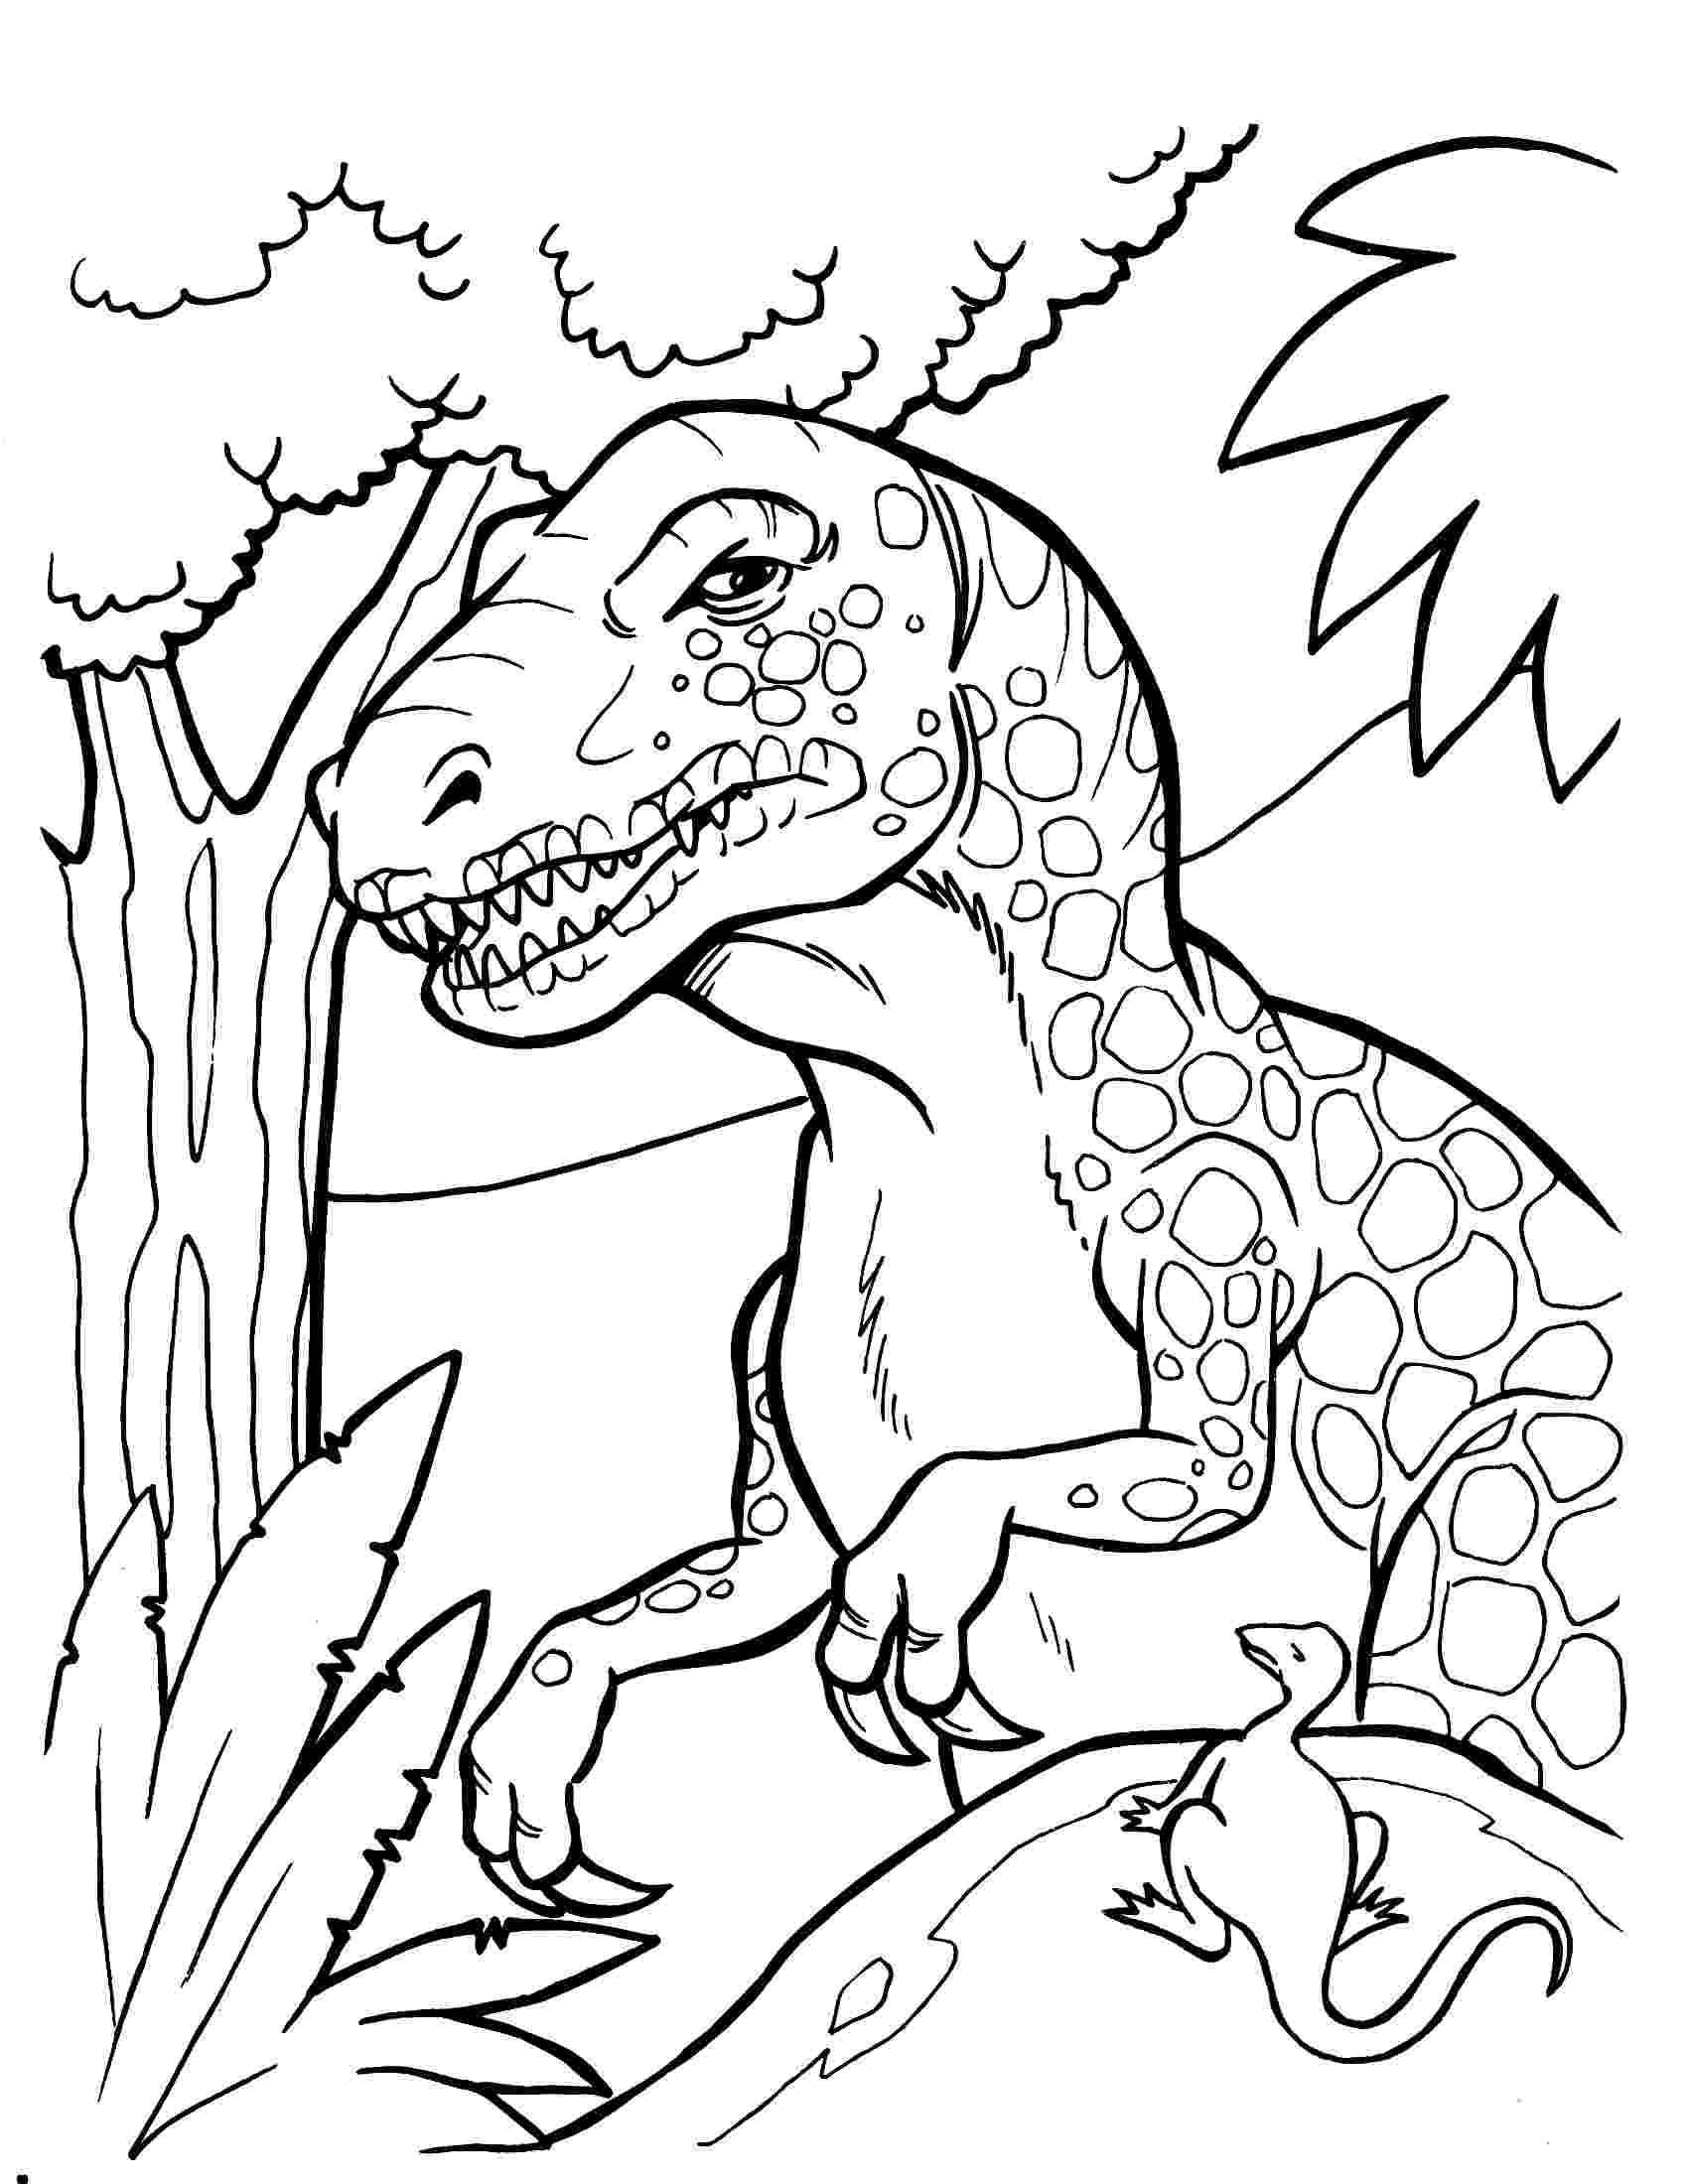 dinosaur color page printable dinosaur coloring pages for kids cool2bkids dinosaur color page